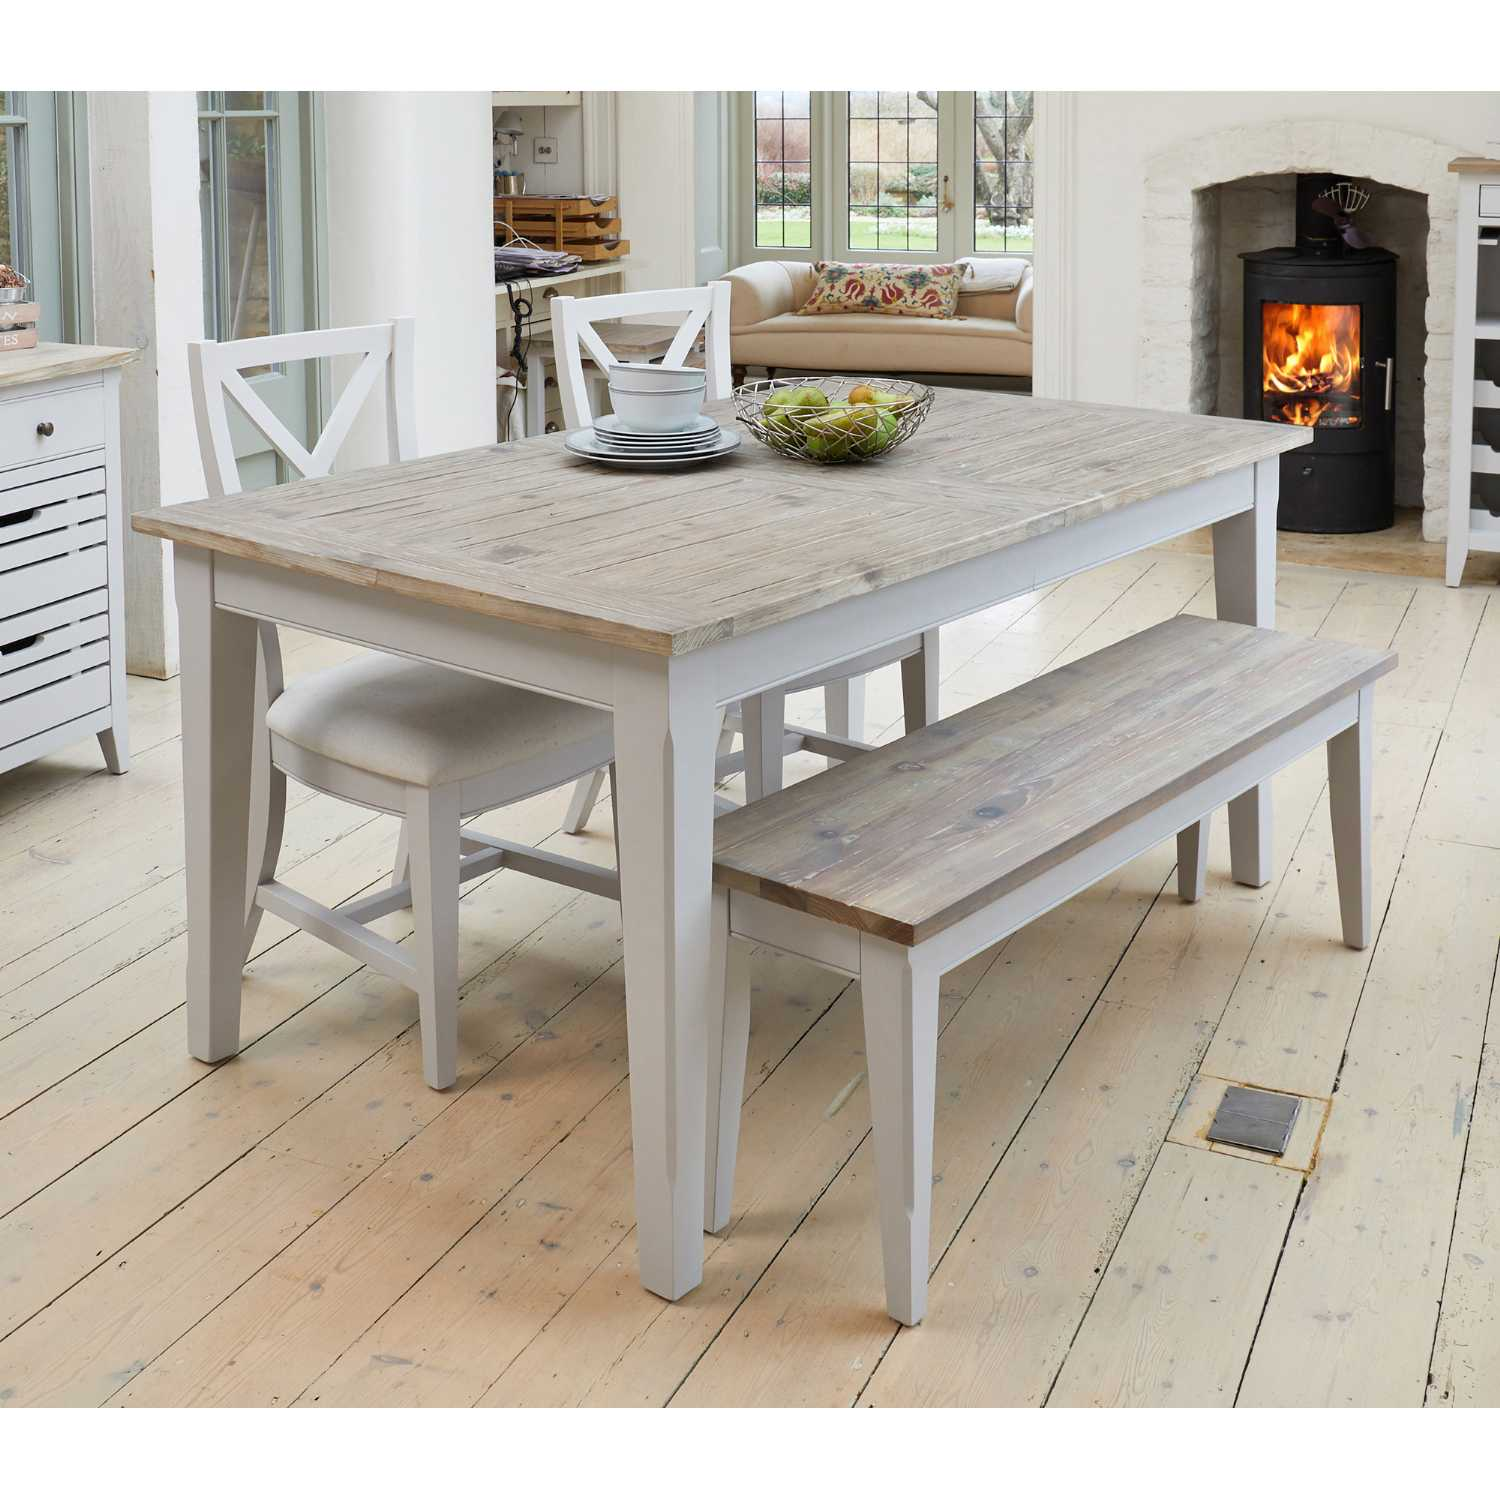 Grey Painted Extending Kitchen or Dining Table with Limed ...